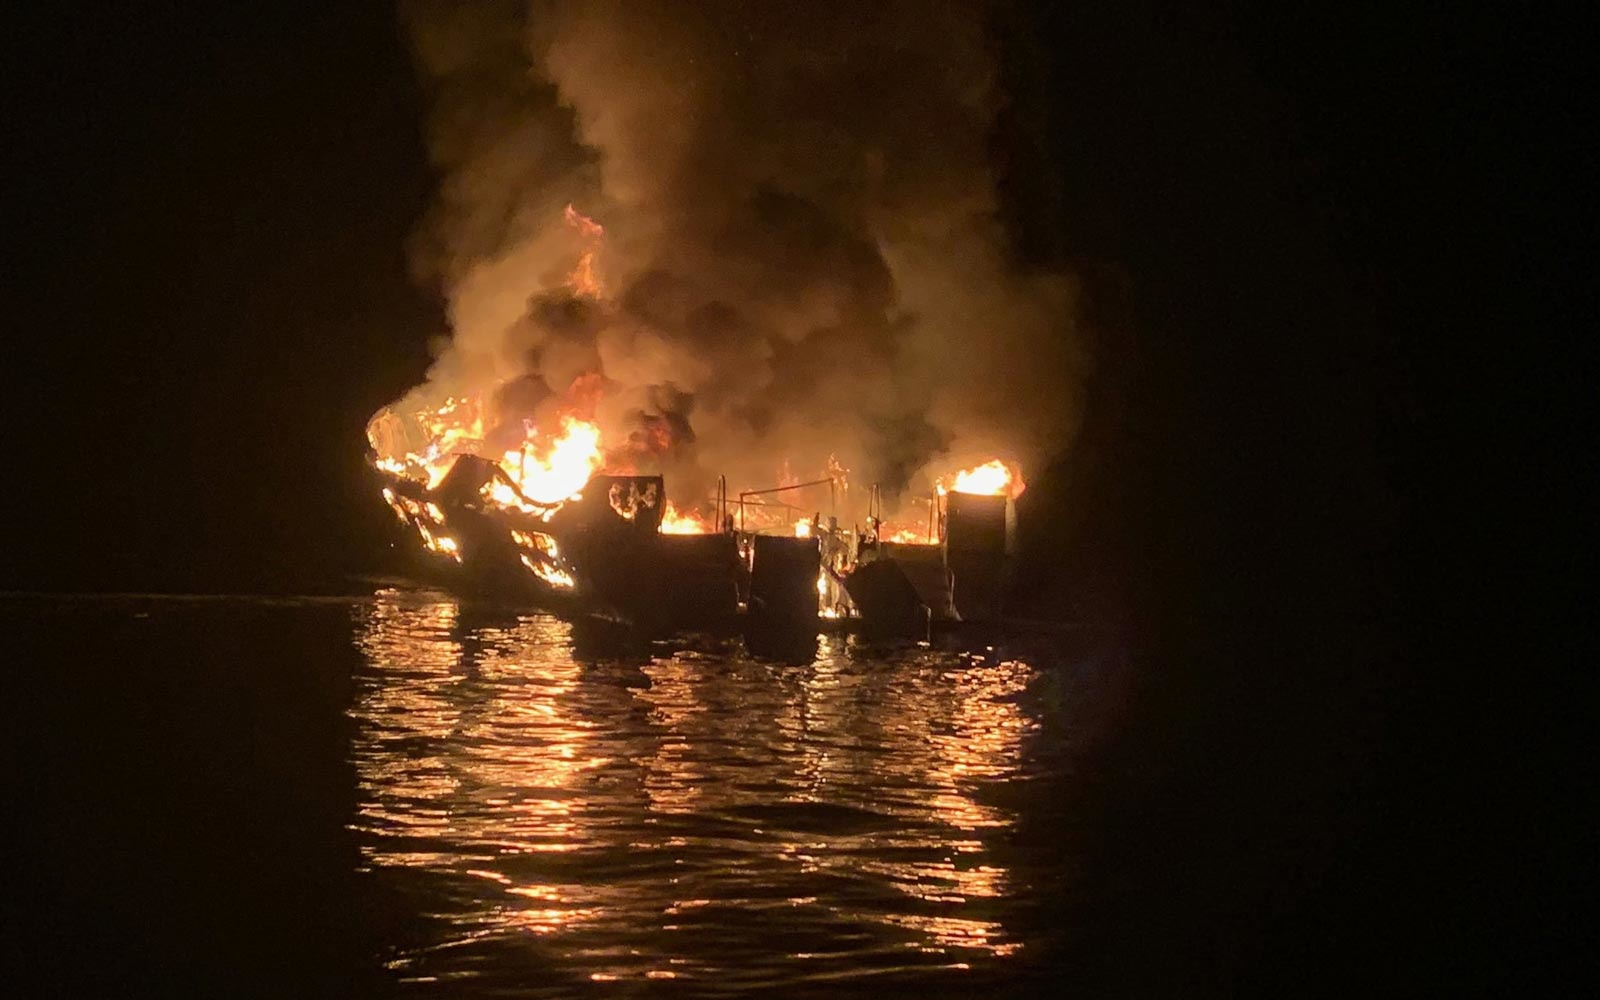 8 dead, 26 unaccounted for in California boat fire